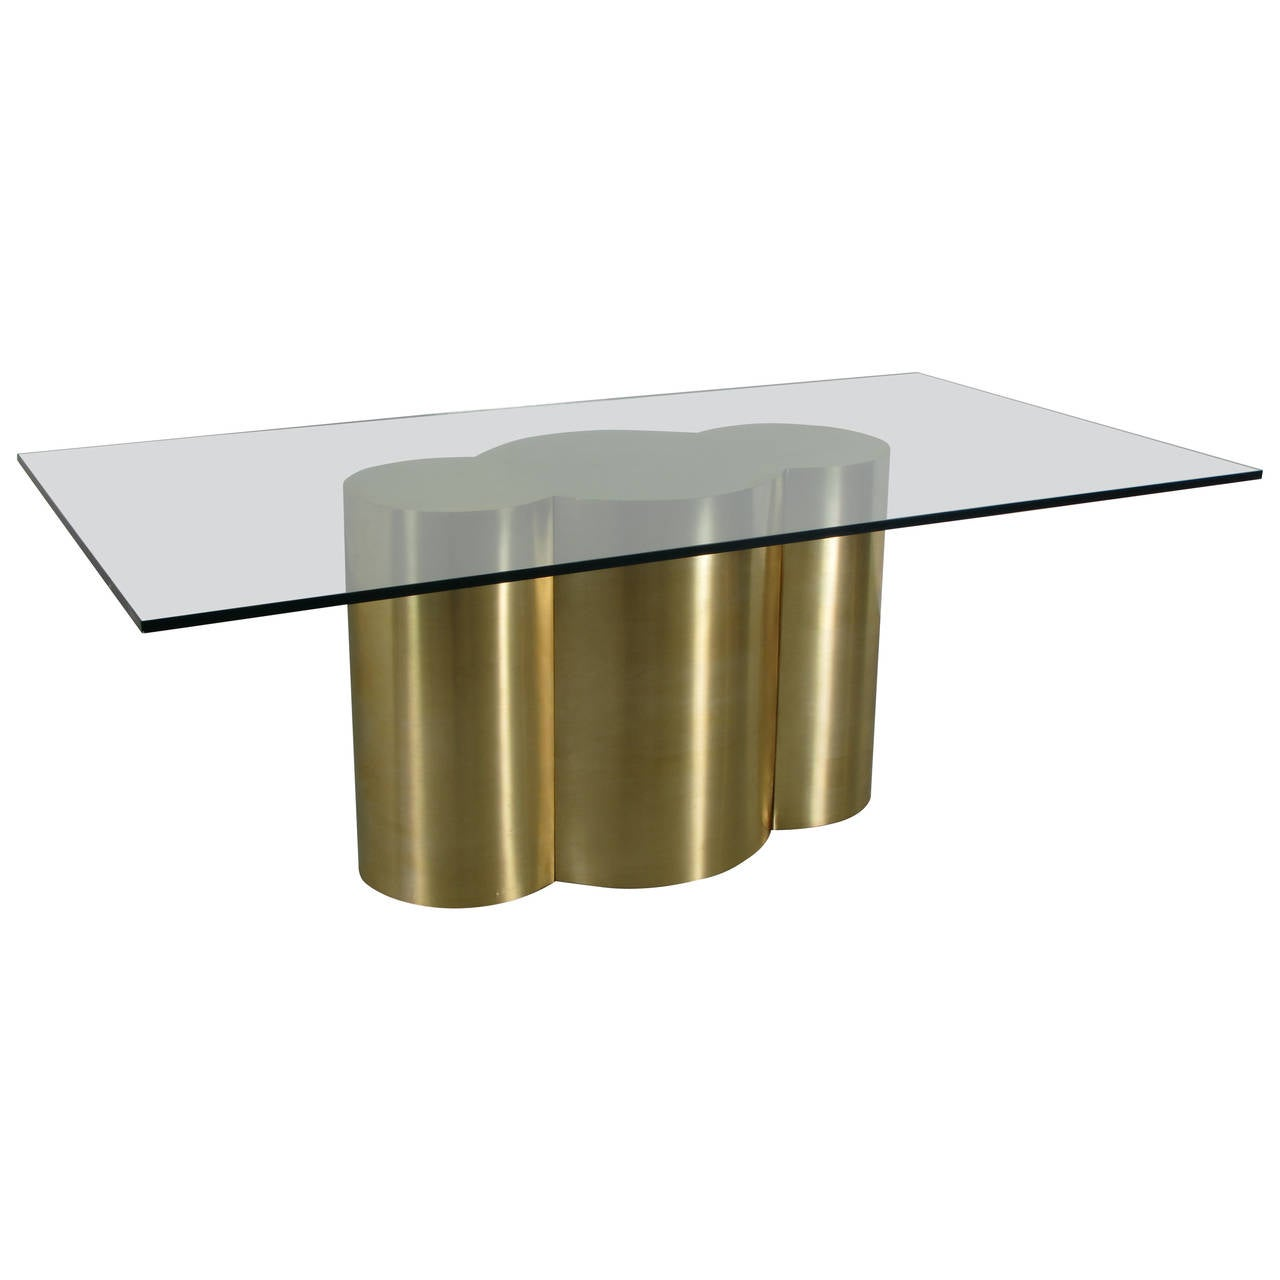 custom quatrefoil dining table base in polished brass by